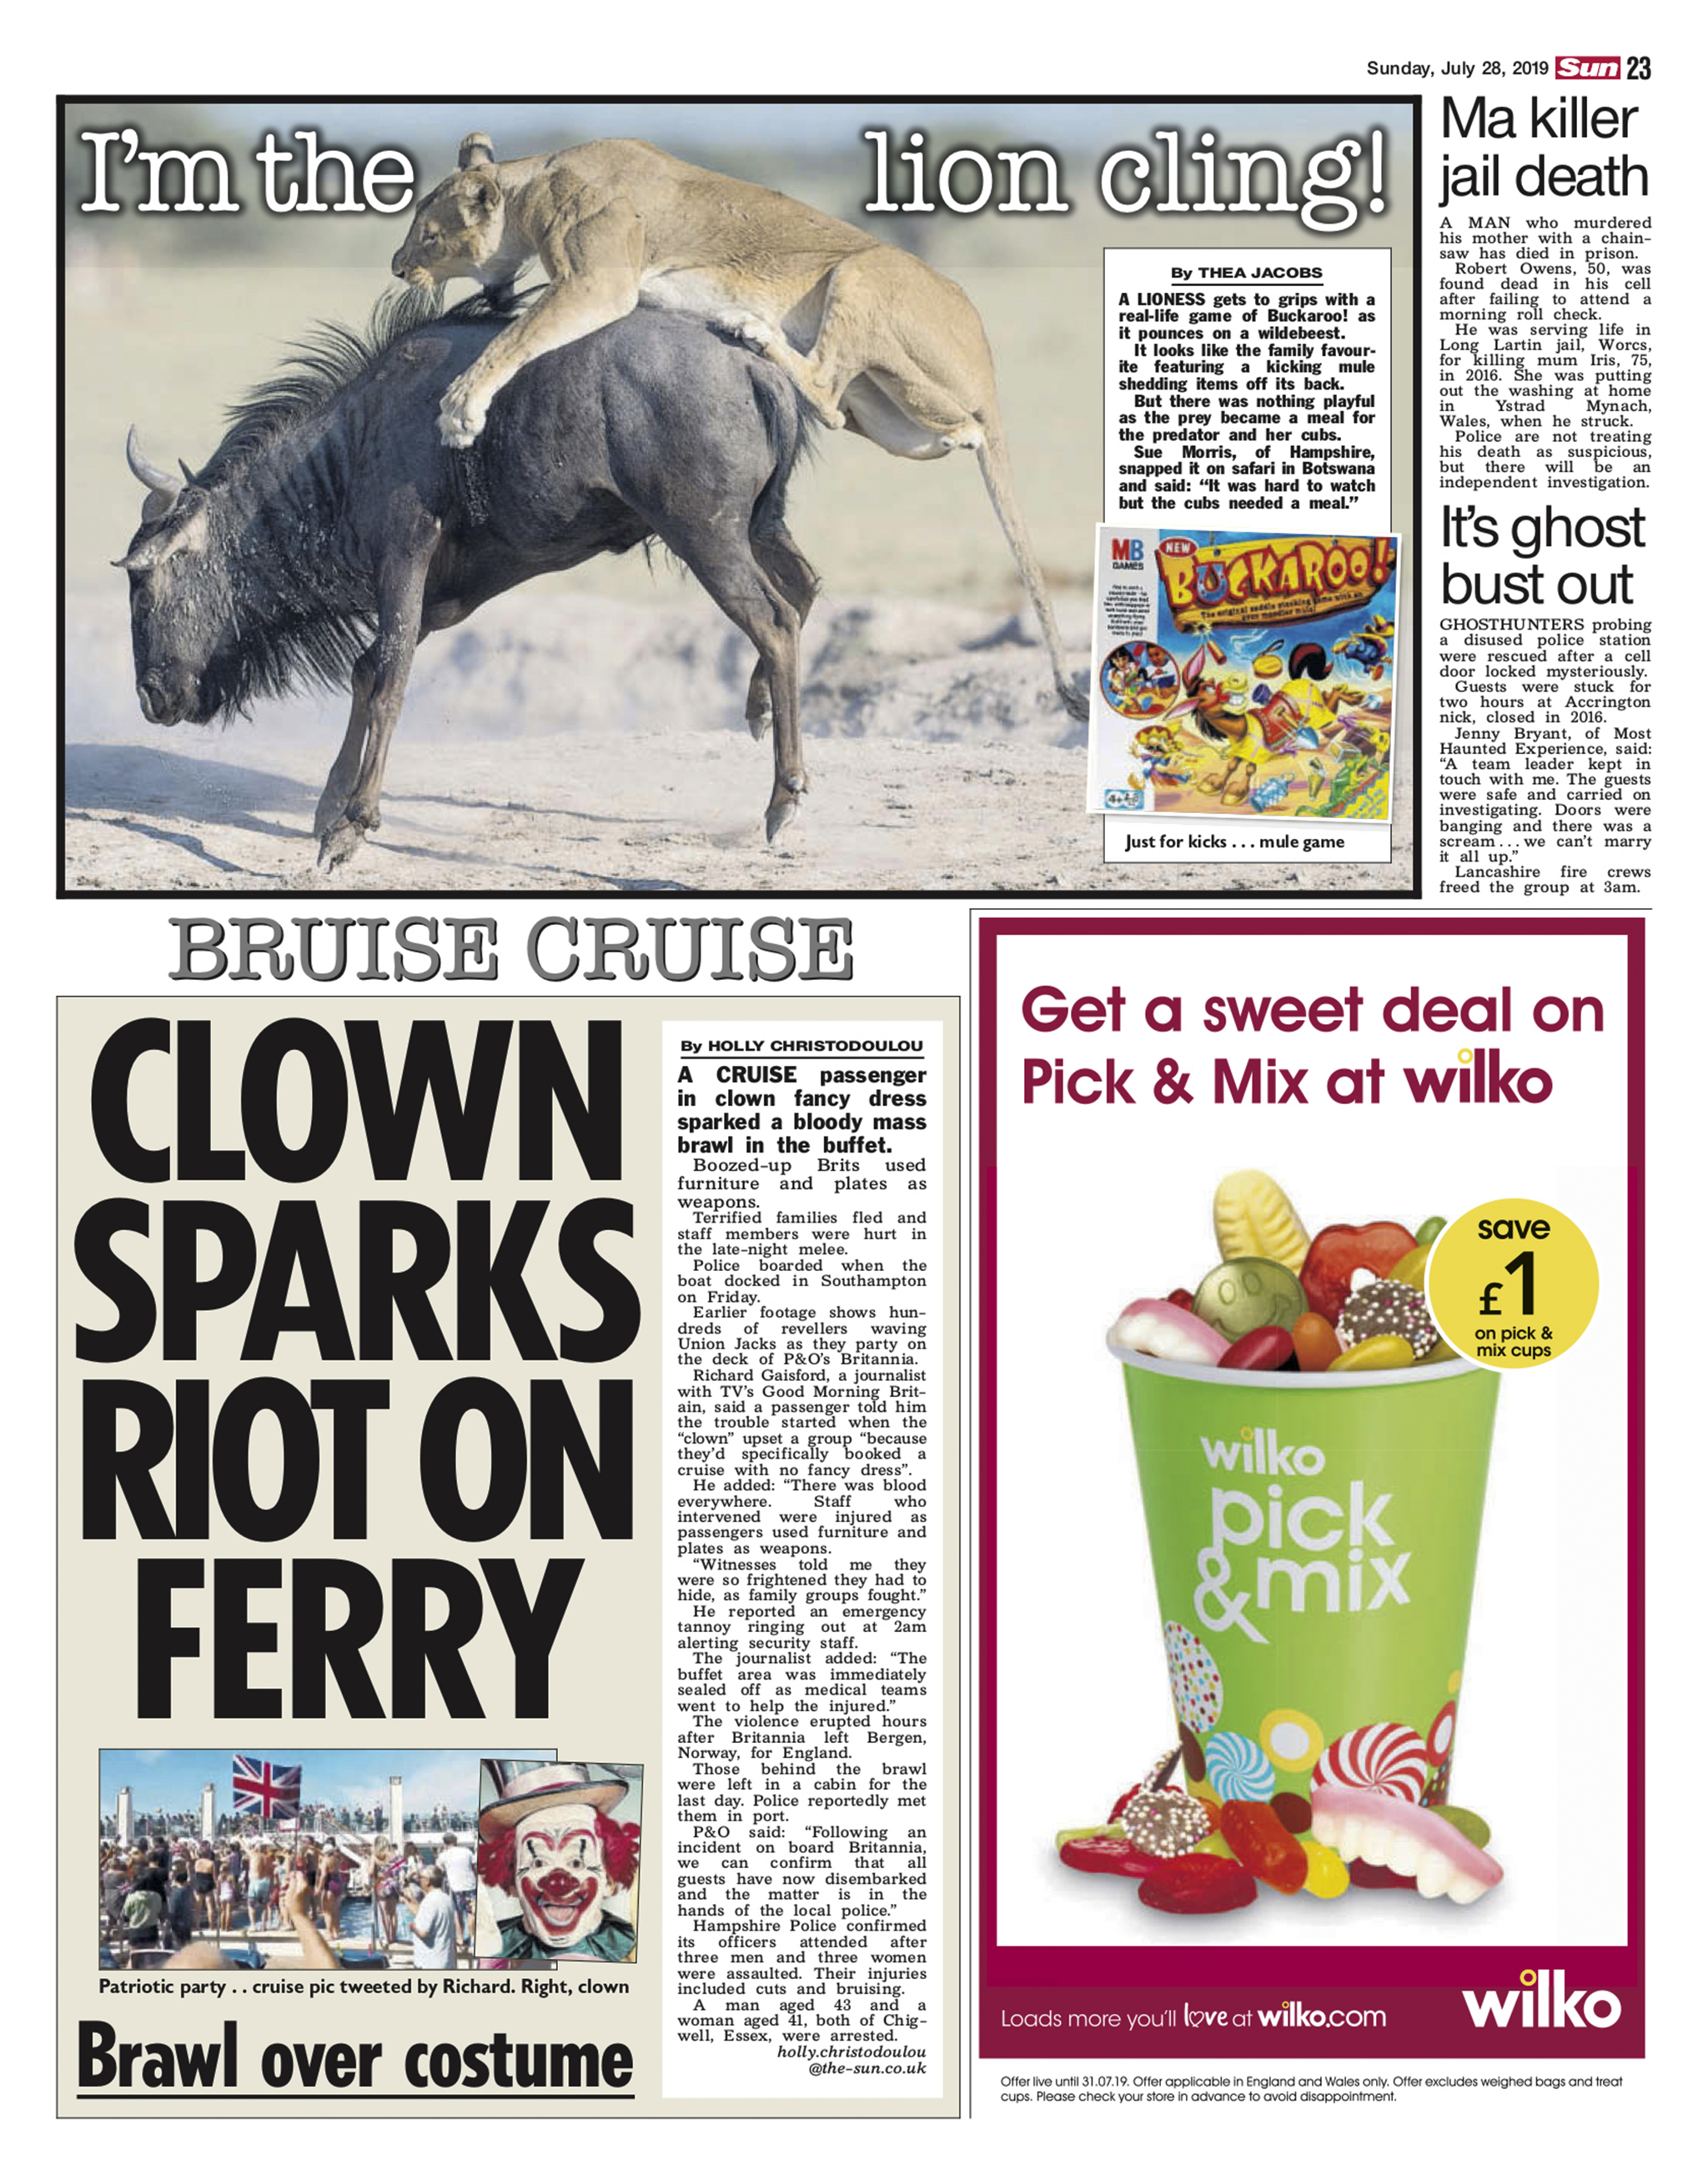 Lion image in The Sun newspaper